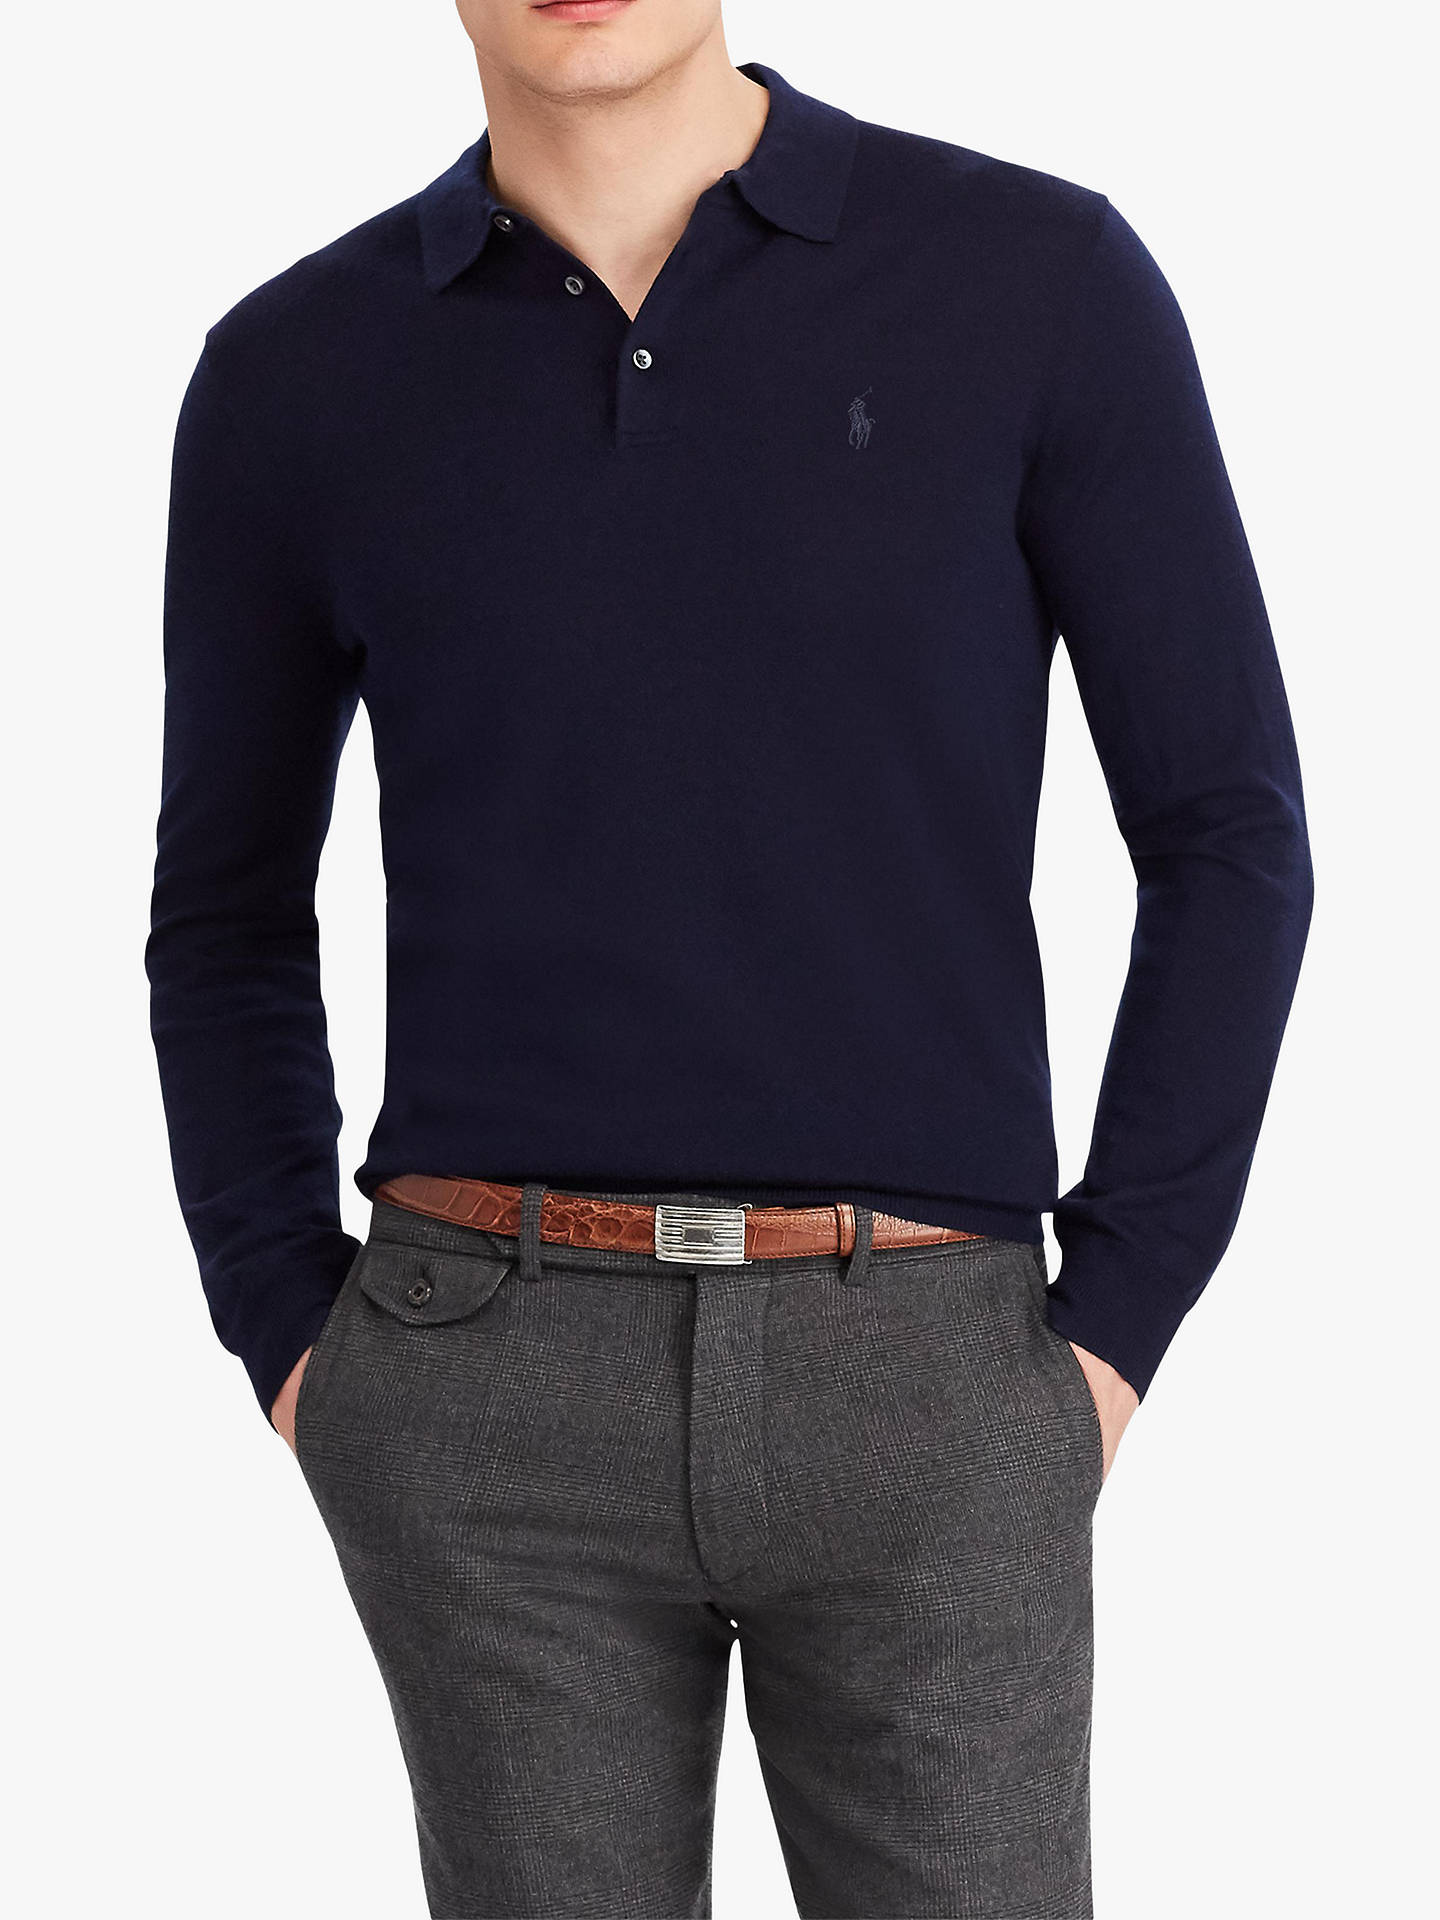 e9398d91d Buy Polo Ralph Lauren Long Sleeve Knitted Polo Shirt, Hunter Navy, M Online  at ...